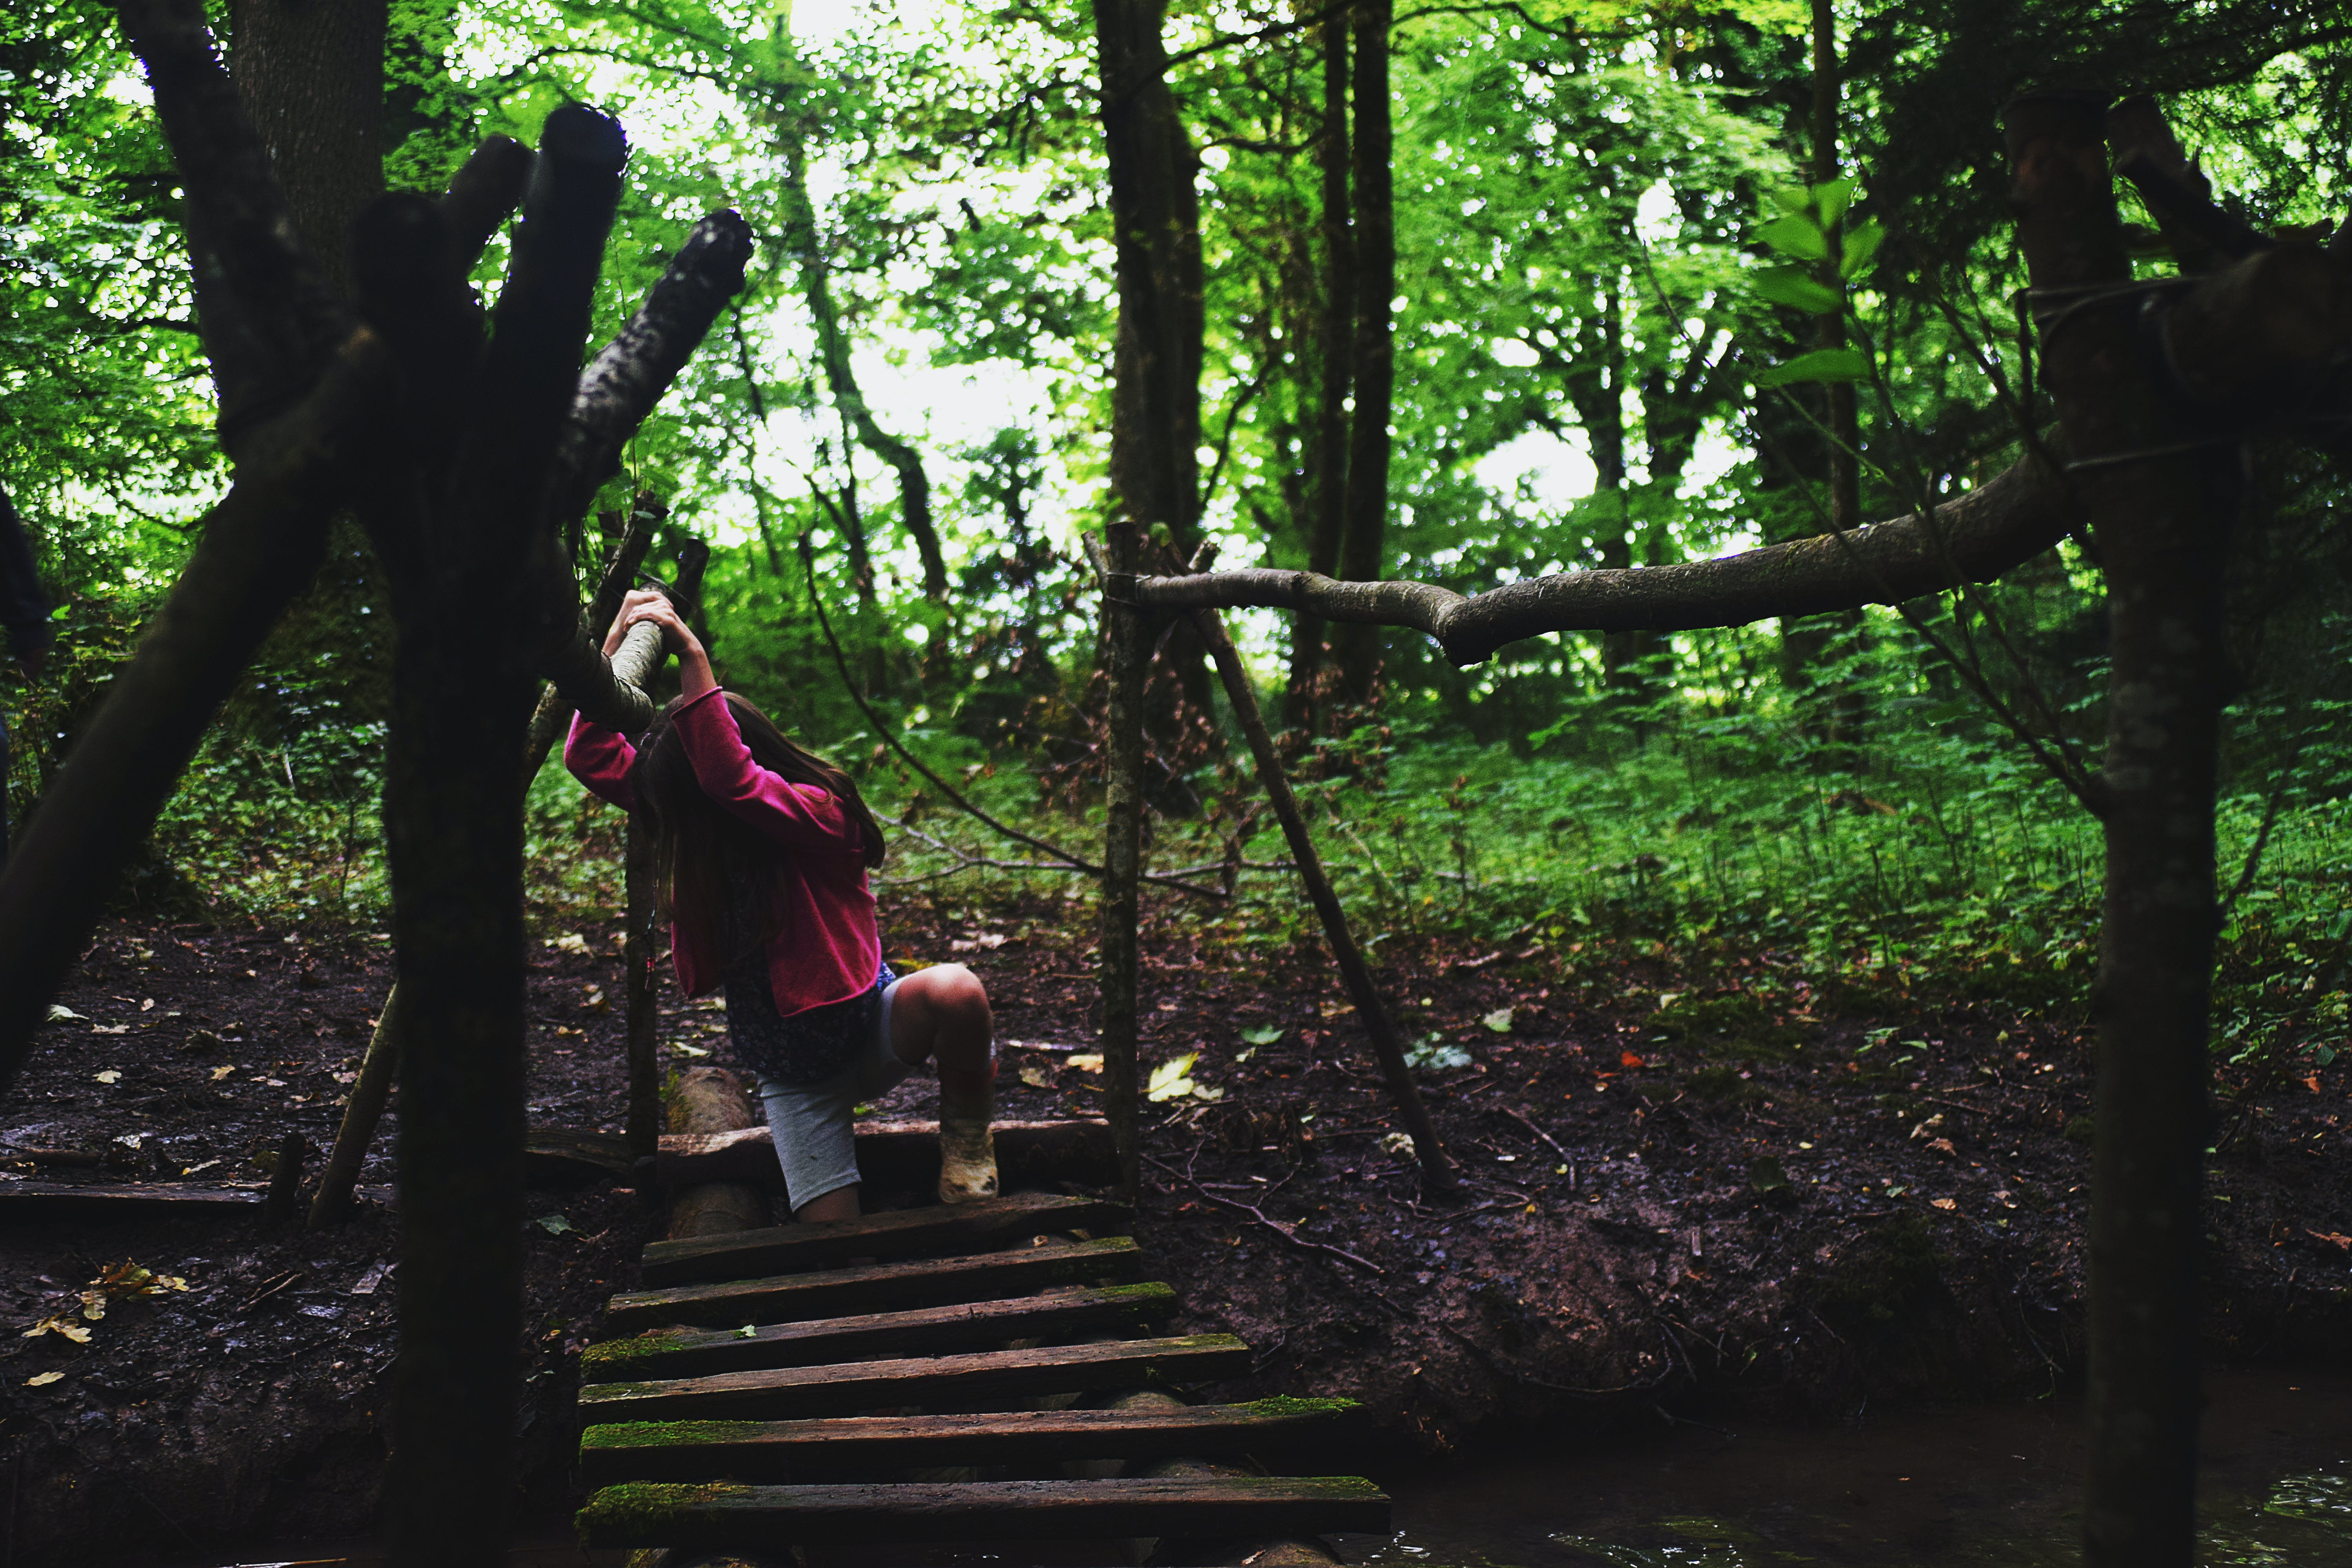 Girl in Pink Jacket on Wooden Bridge in the Forest